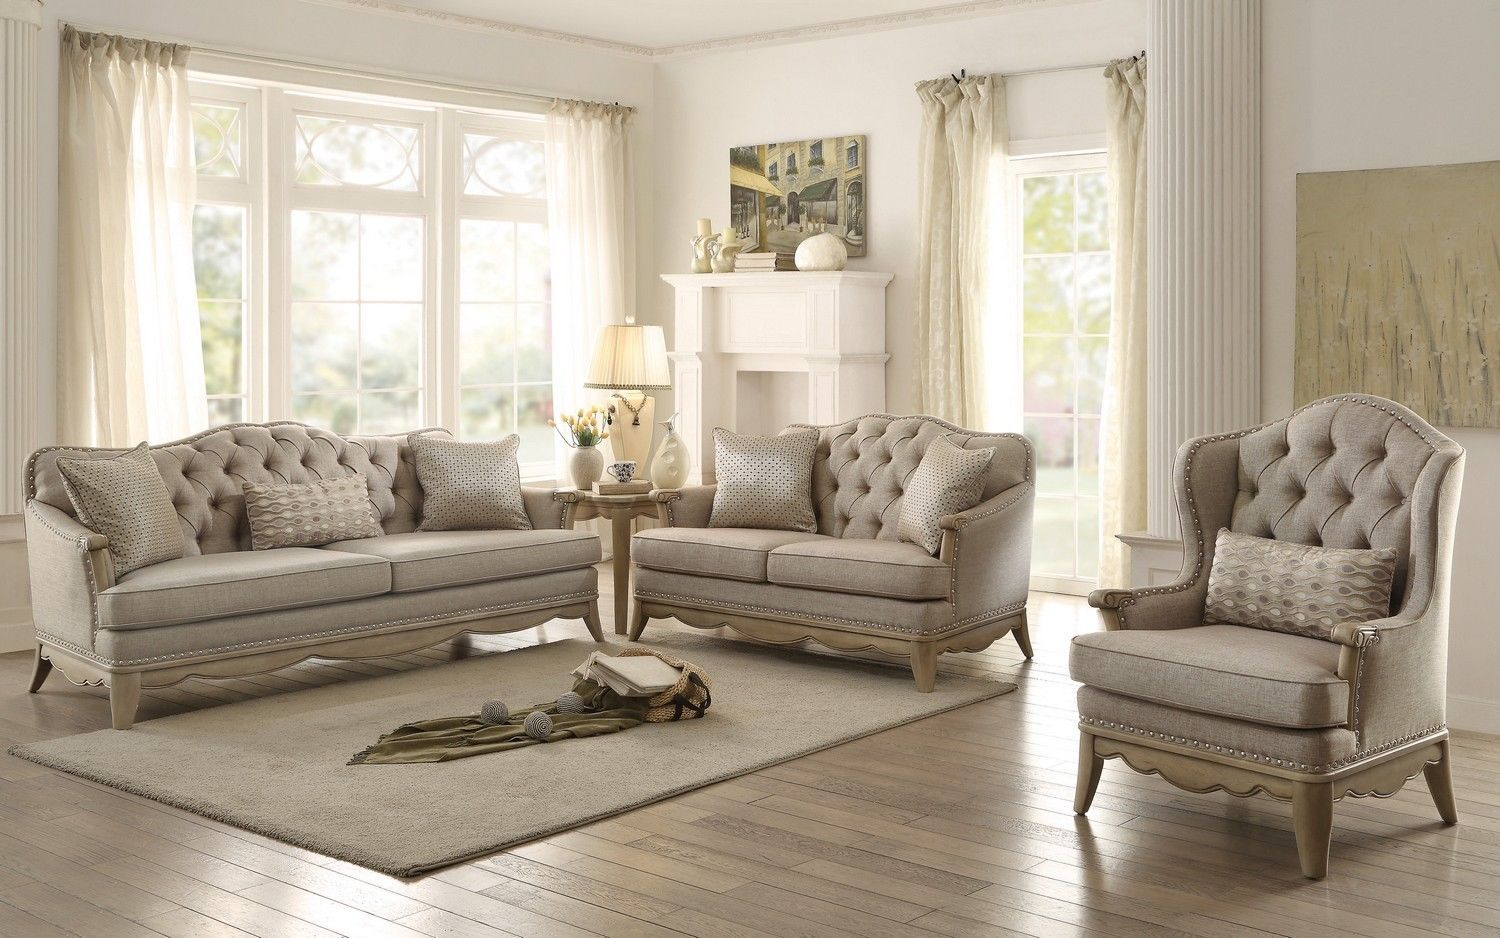 Formal traditional ashden sofa set 3pc sofa loveseat chair for Formal sofa sets